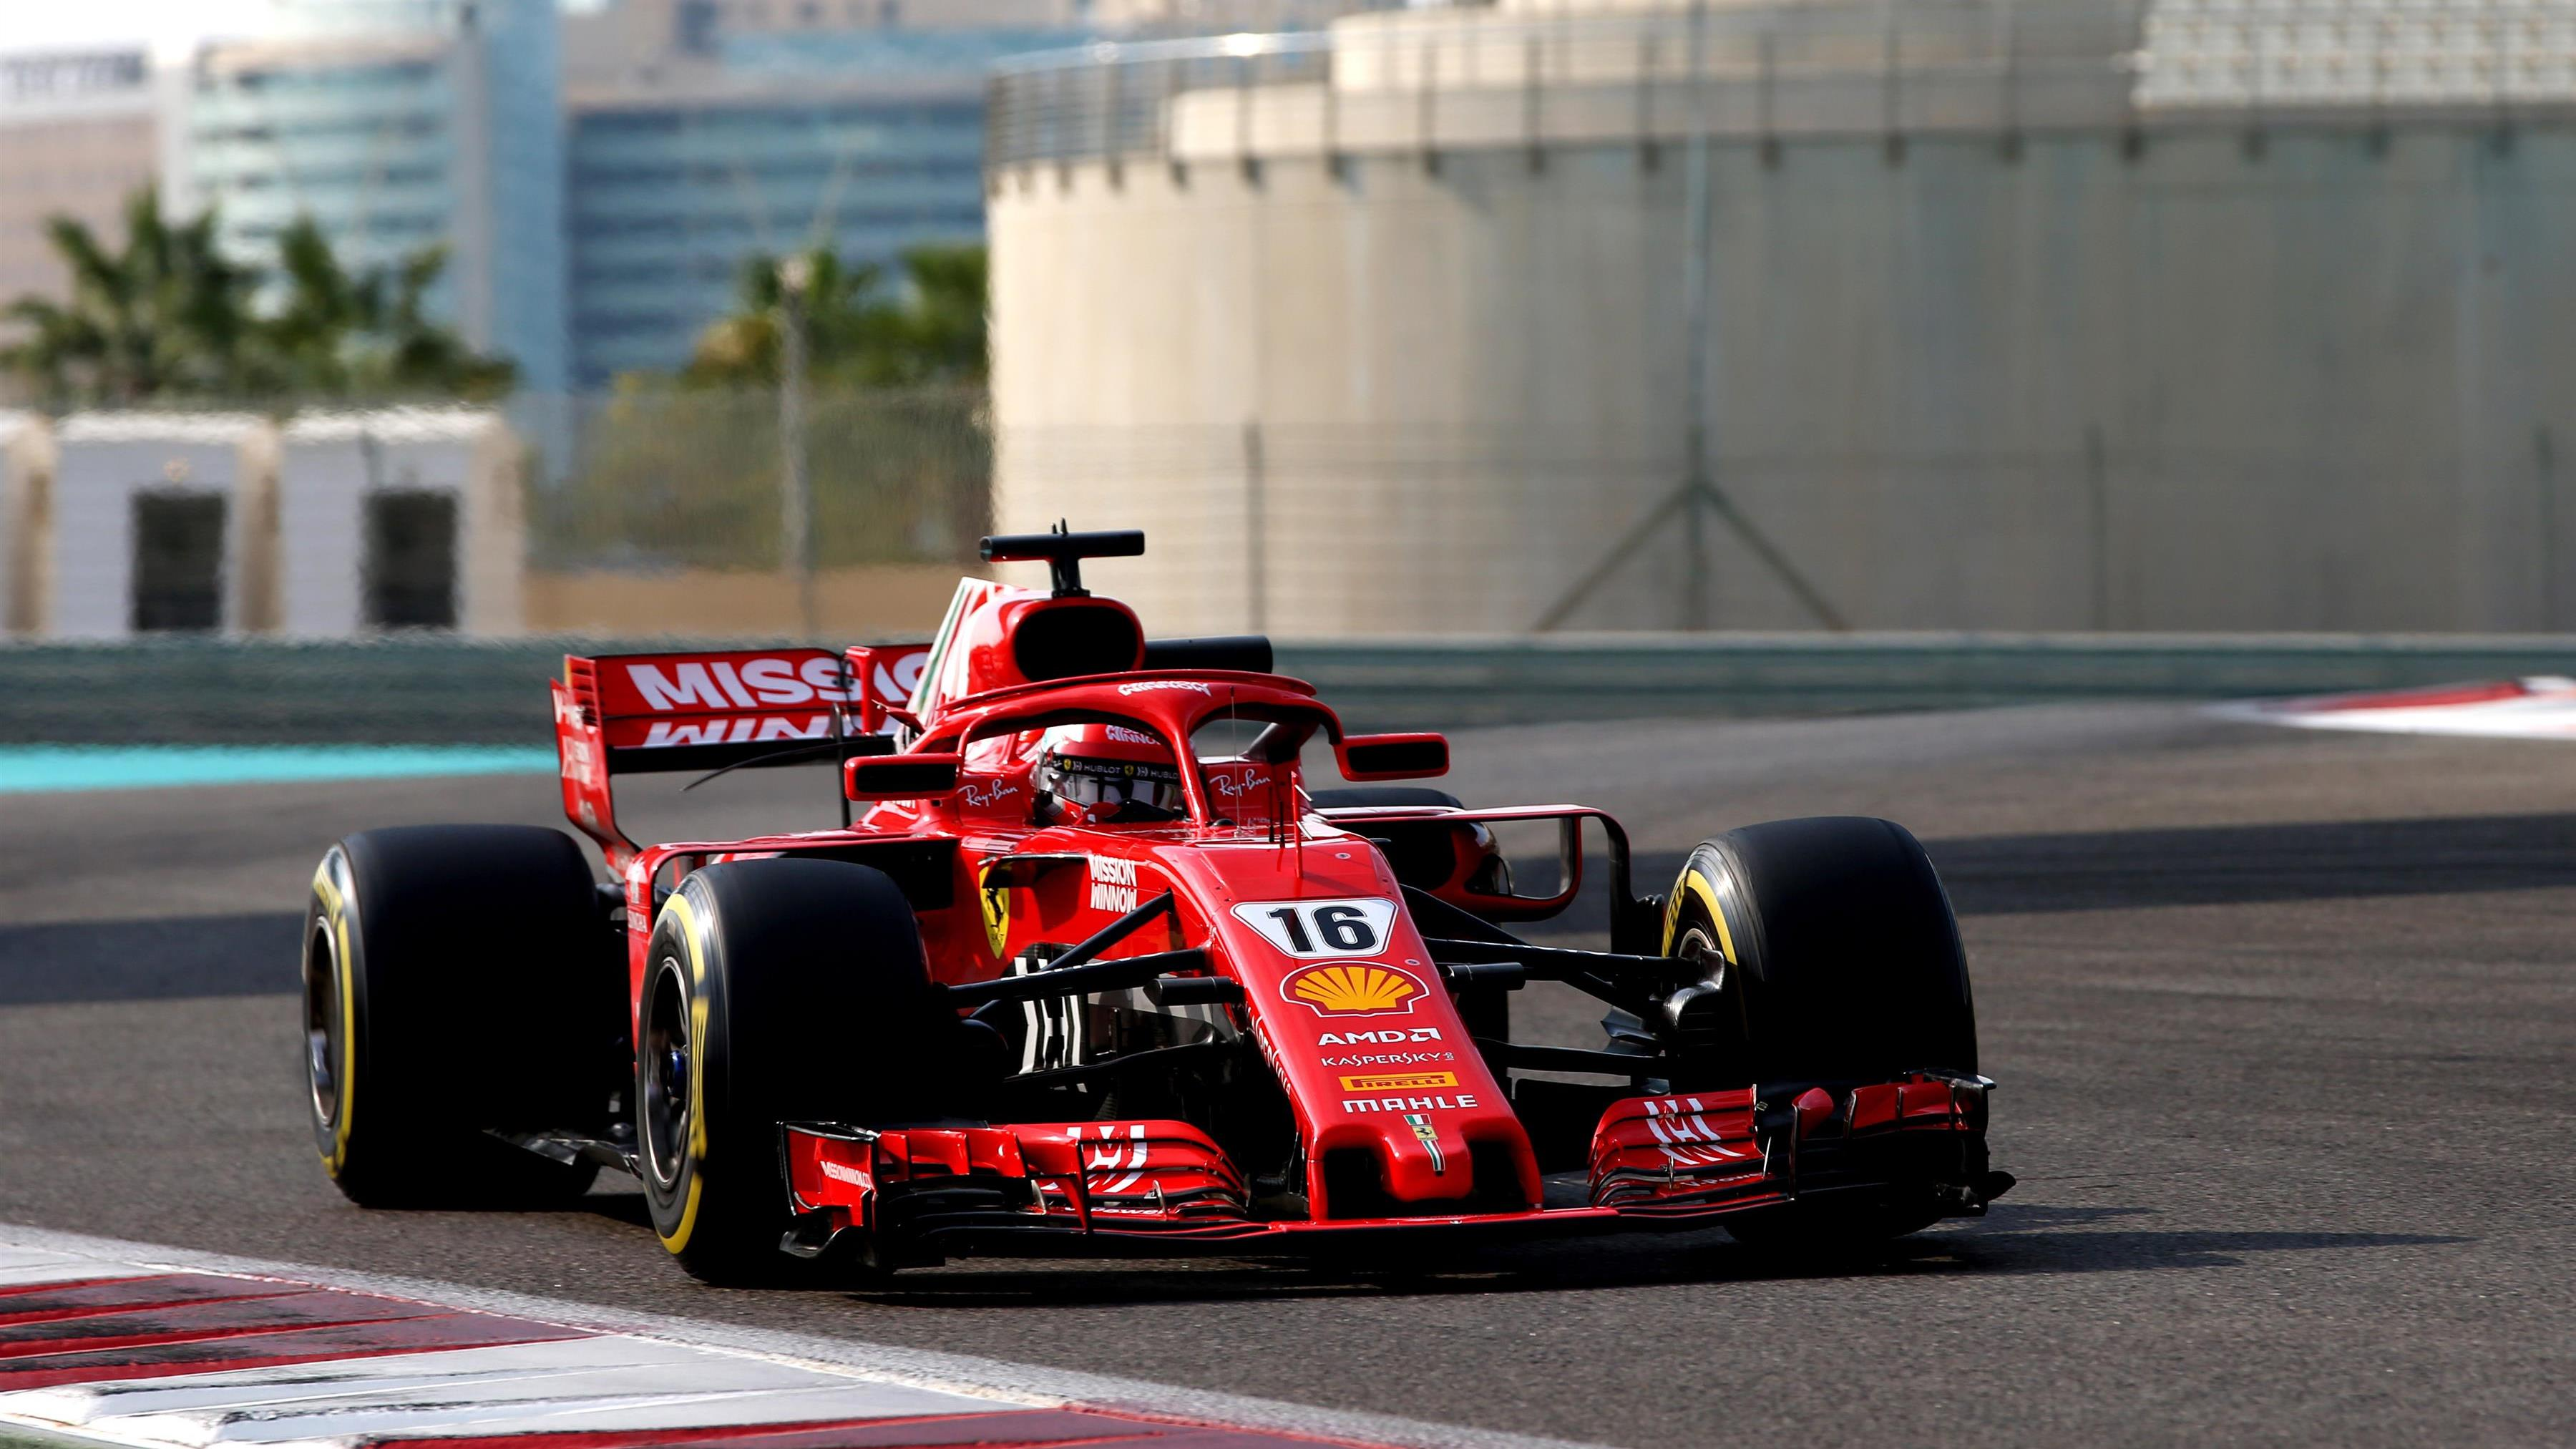 new ferrari driver leclerc tops final 2018 test session in abu dhabi formula 1. Black Bedroom Furniture Sets. Home Design Ideas